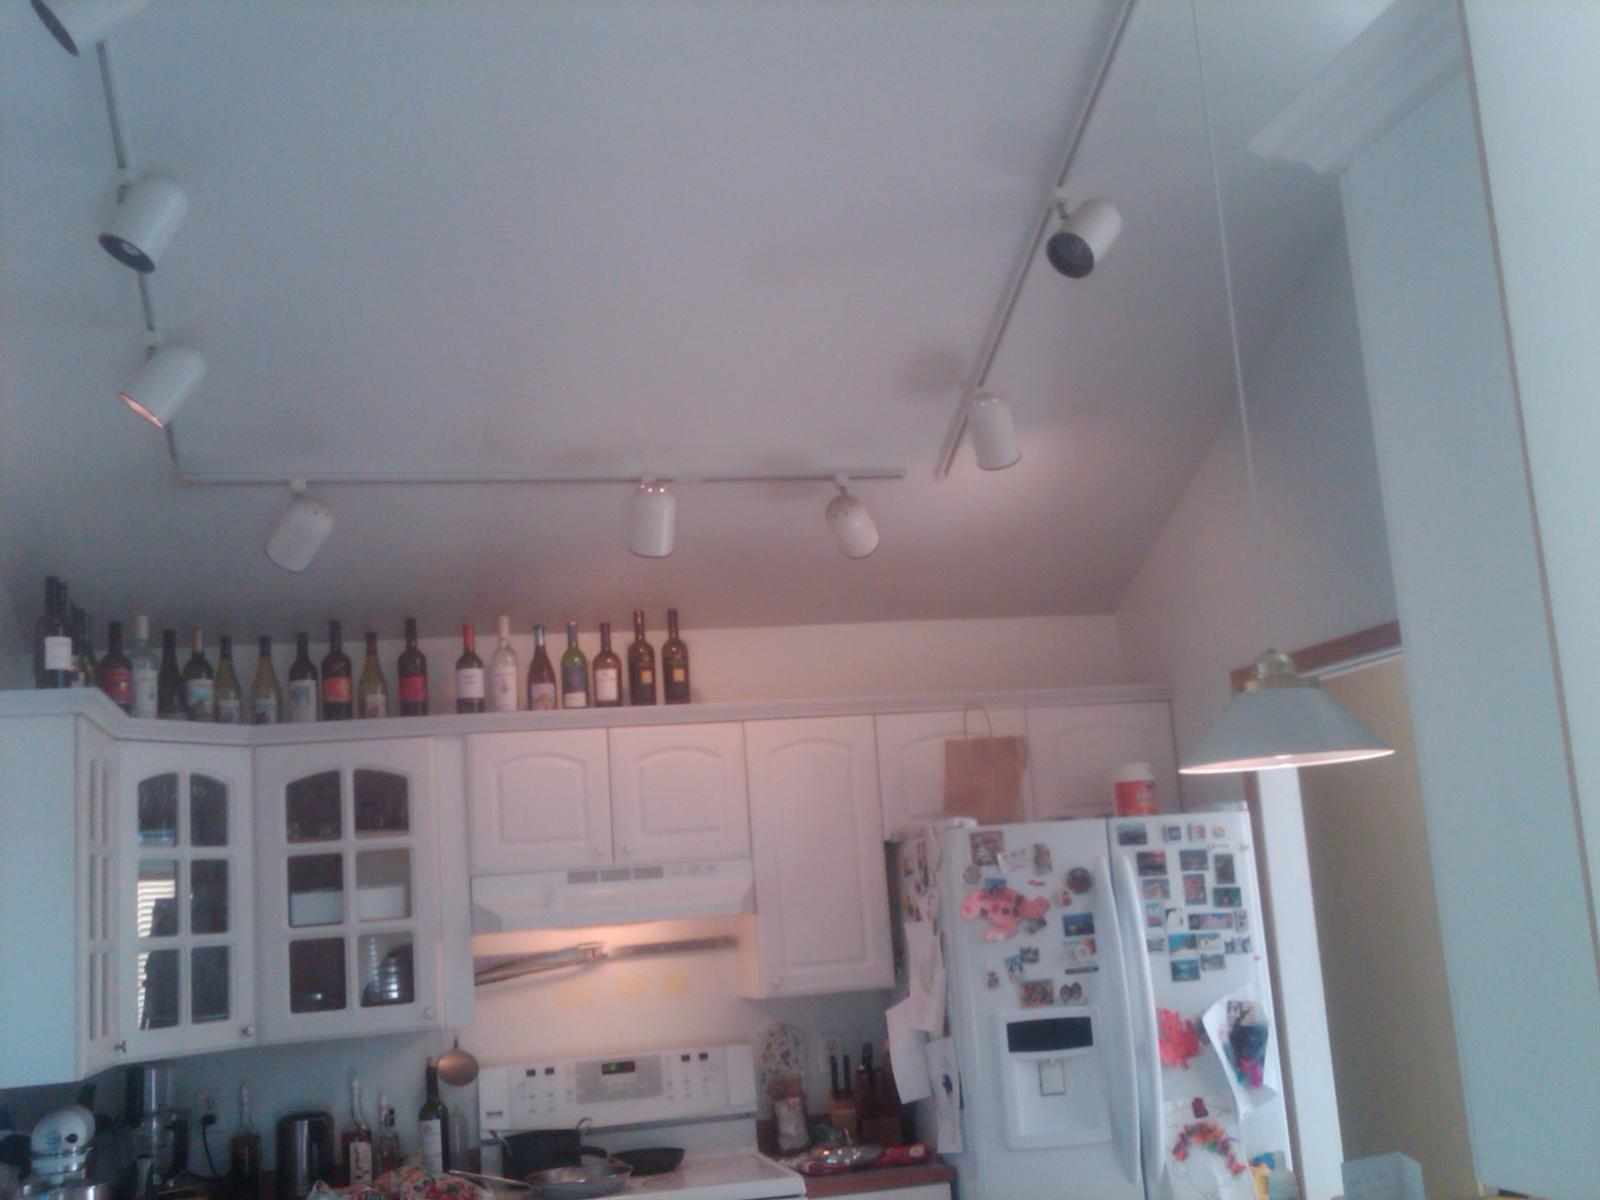 track lighting solutions. kitchen needs lighting solution and iu0027m stumped track solutions